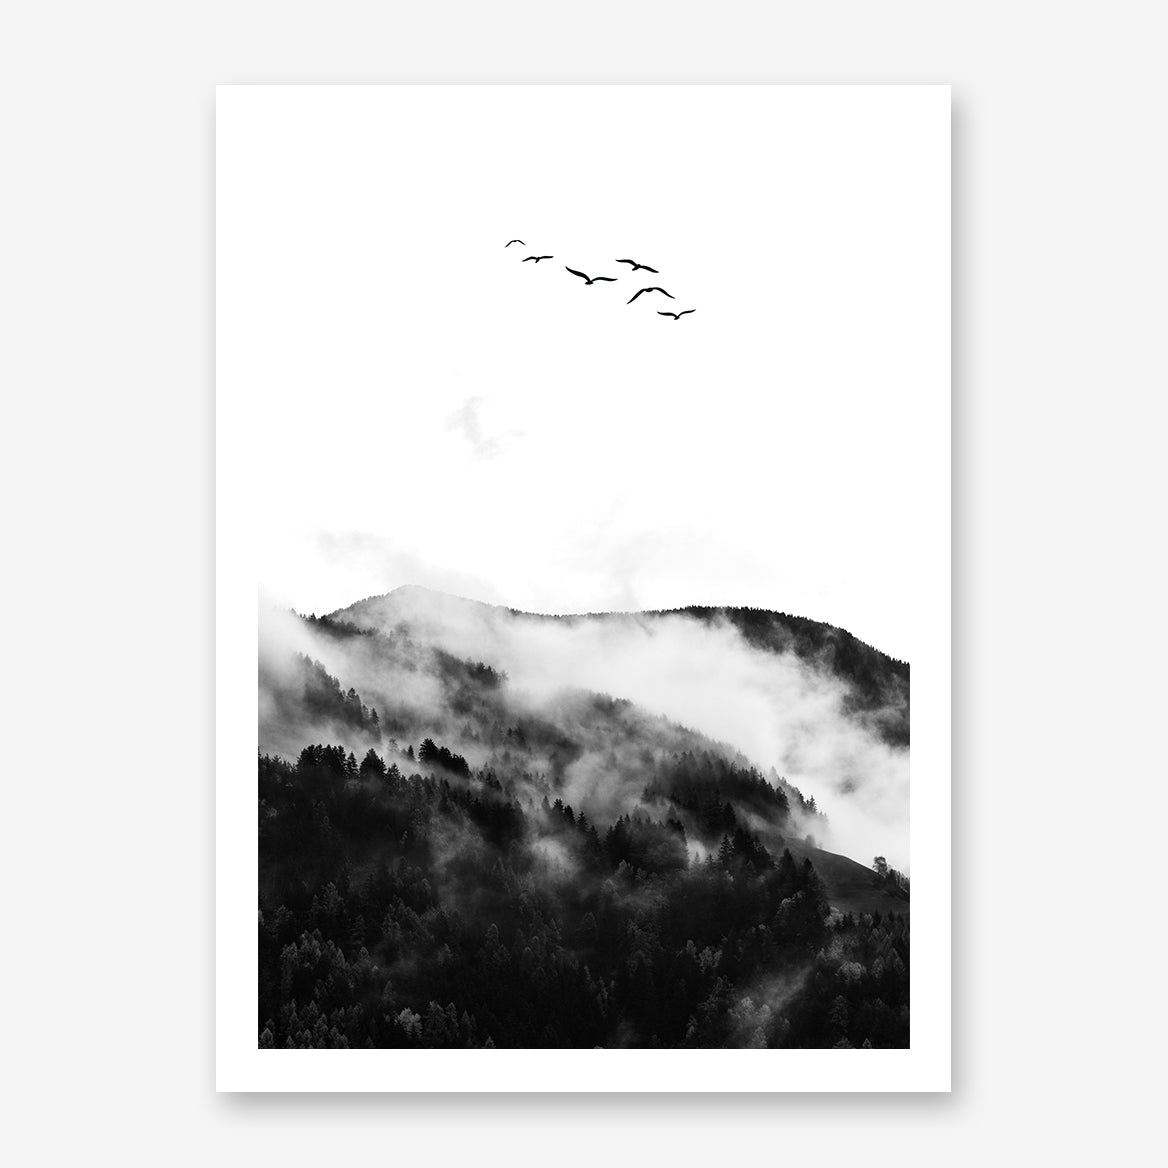 Black and white photo poster print by Kubistika, with foggy mountain forest and birds.